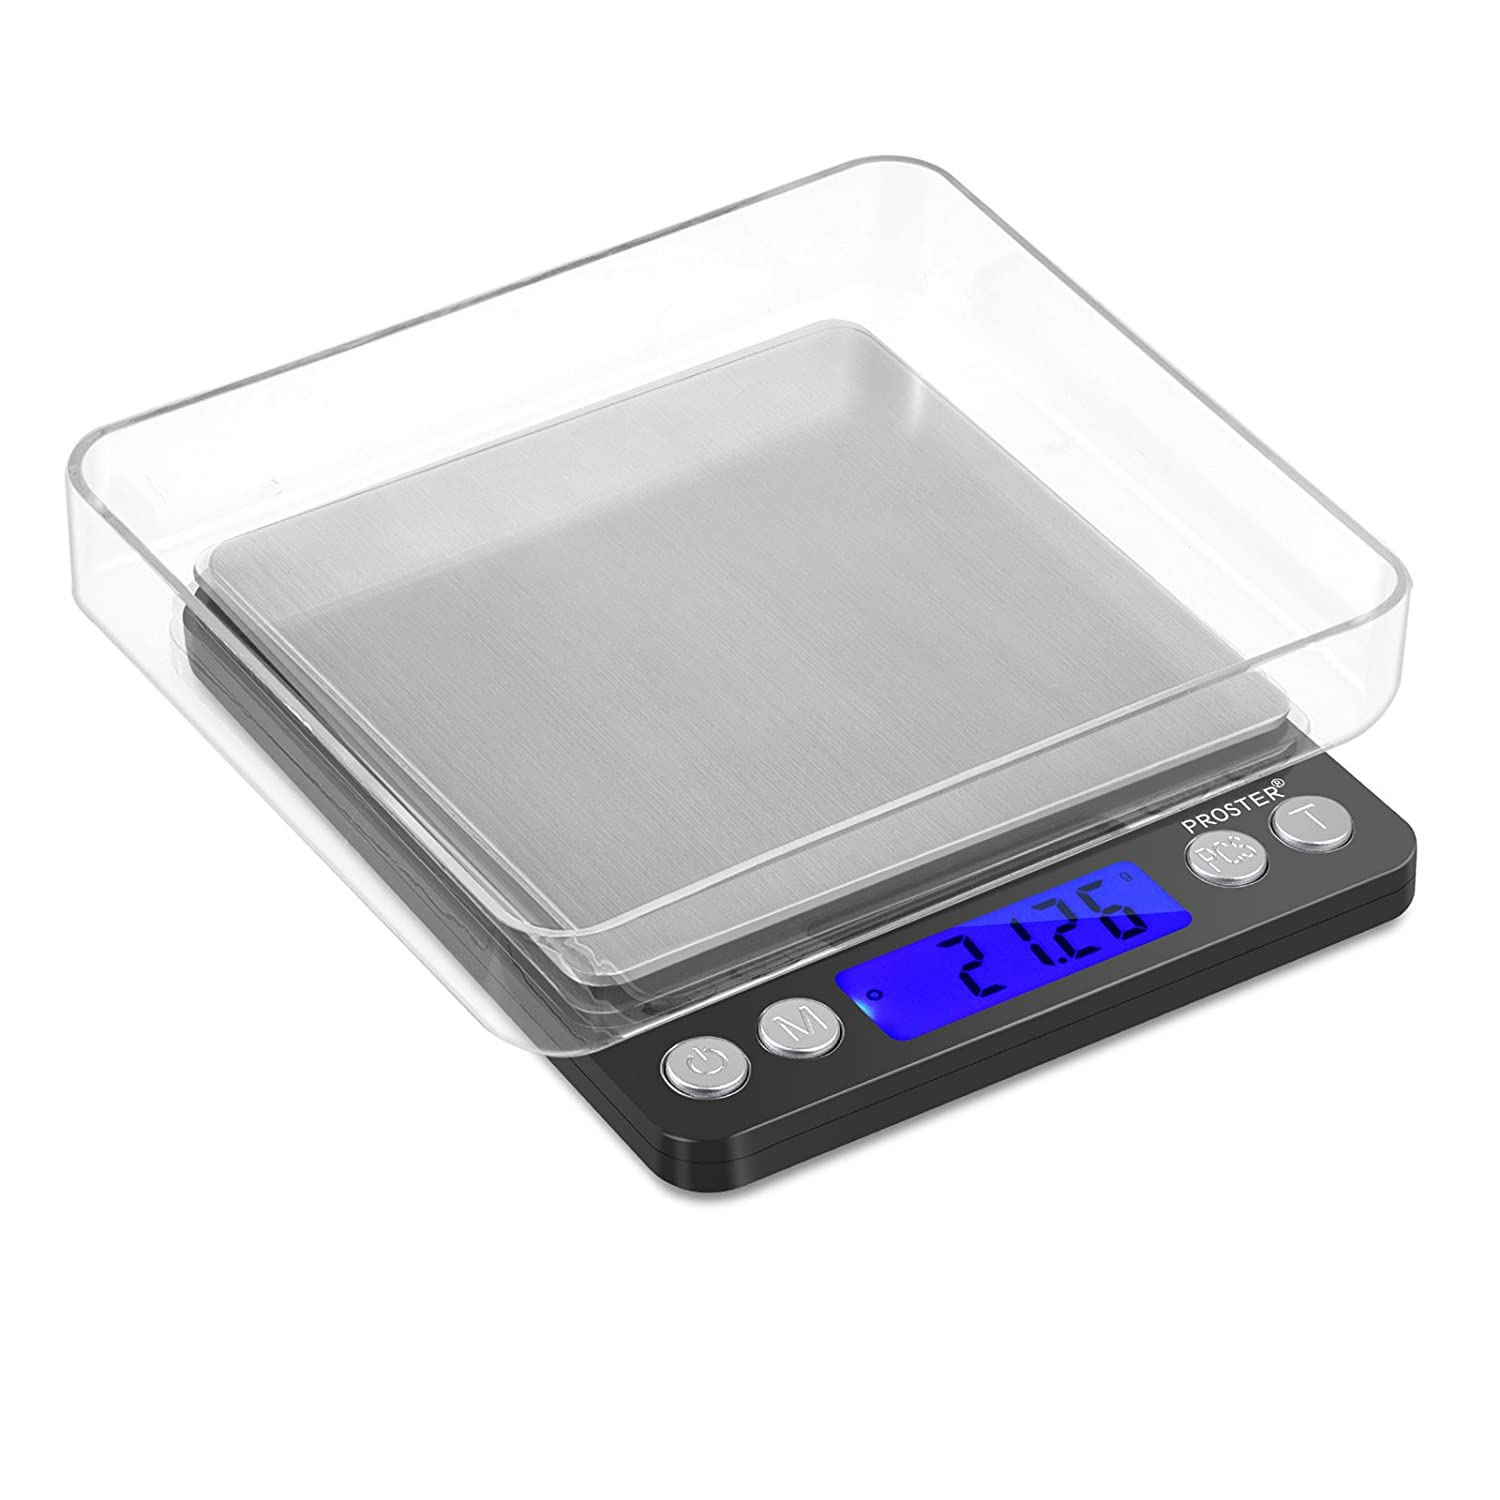 Proster digital food scale 500g 0 01g portable kitchen scale backlit lcd pocket stainless steel precision scale for cooking jewelry weighing durable scale 2